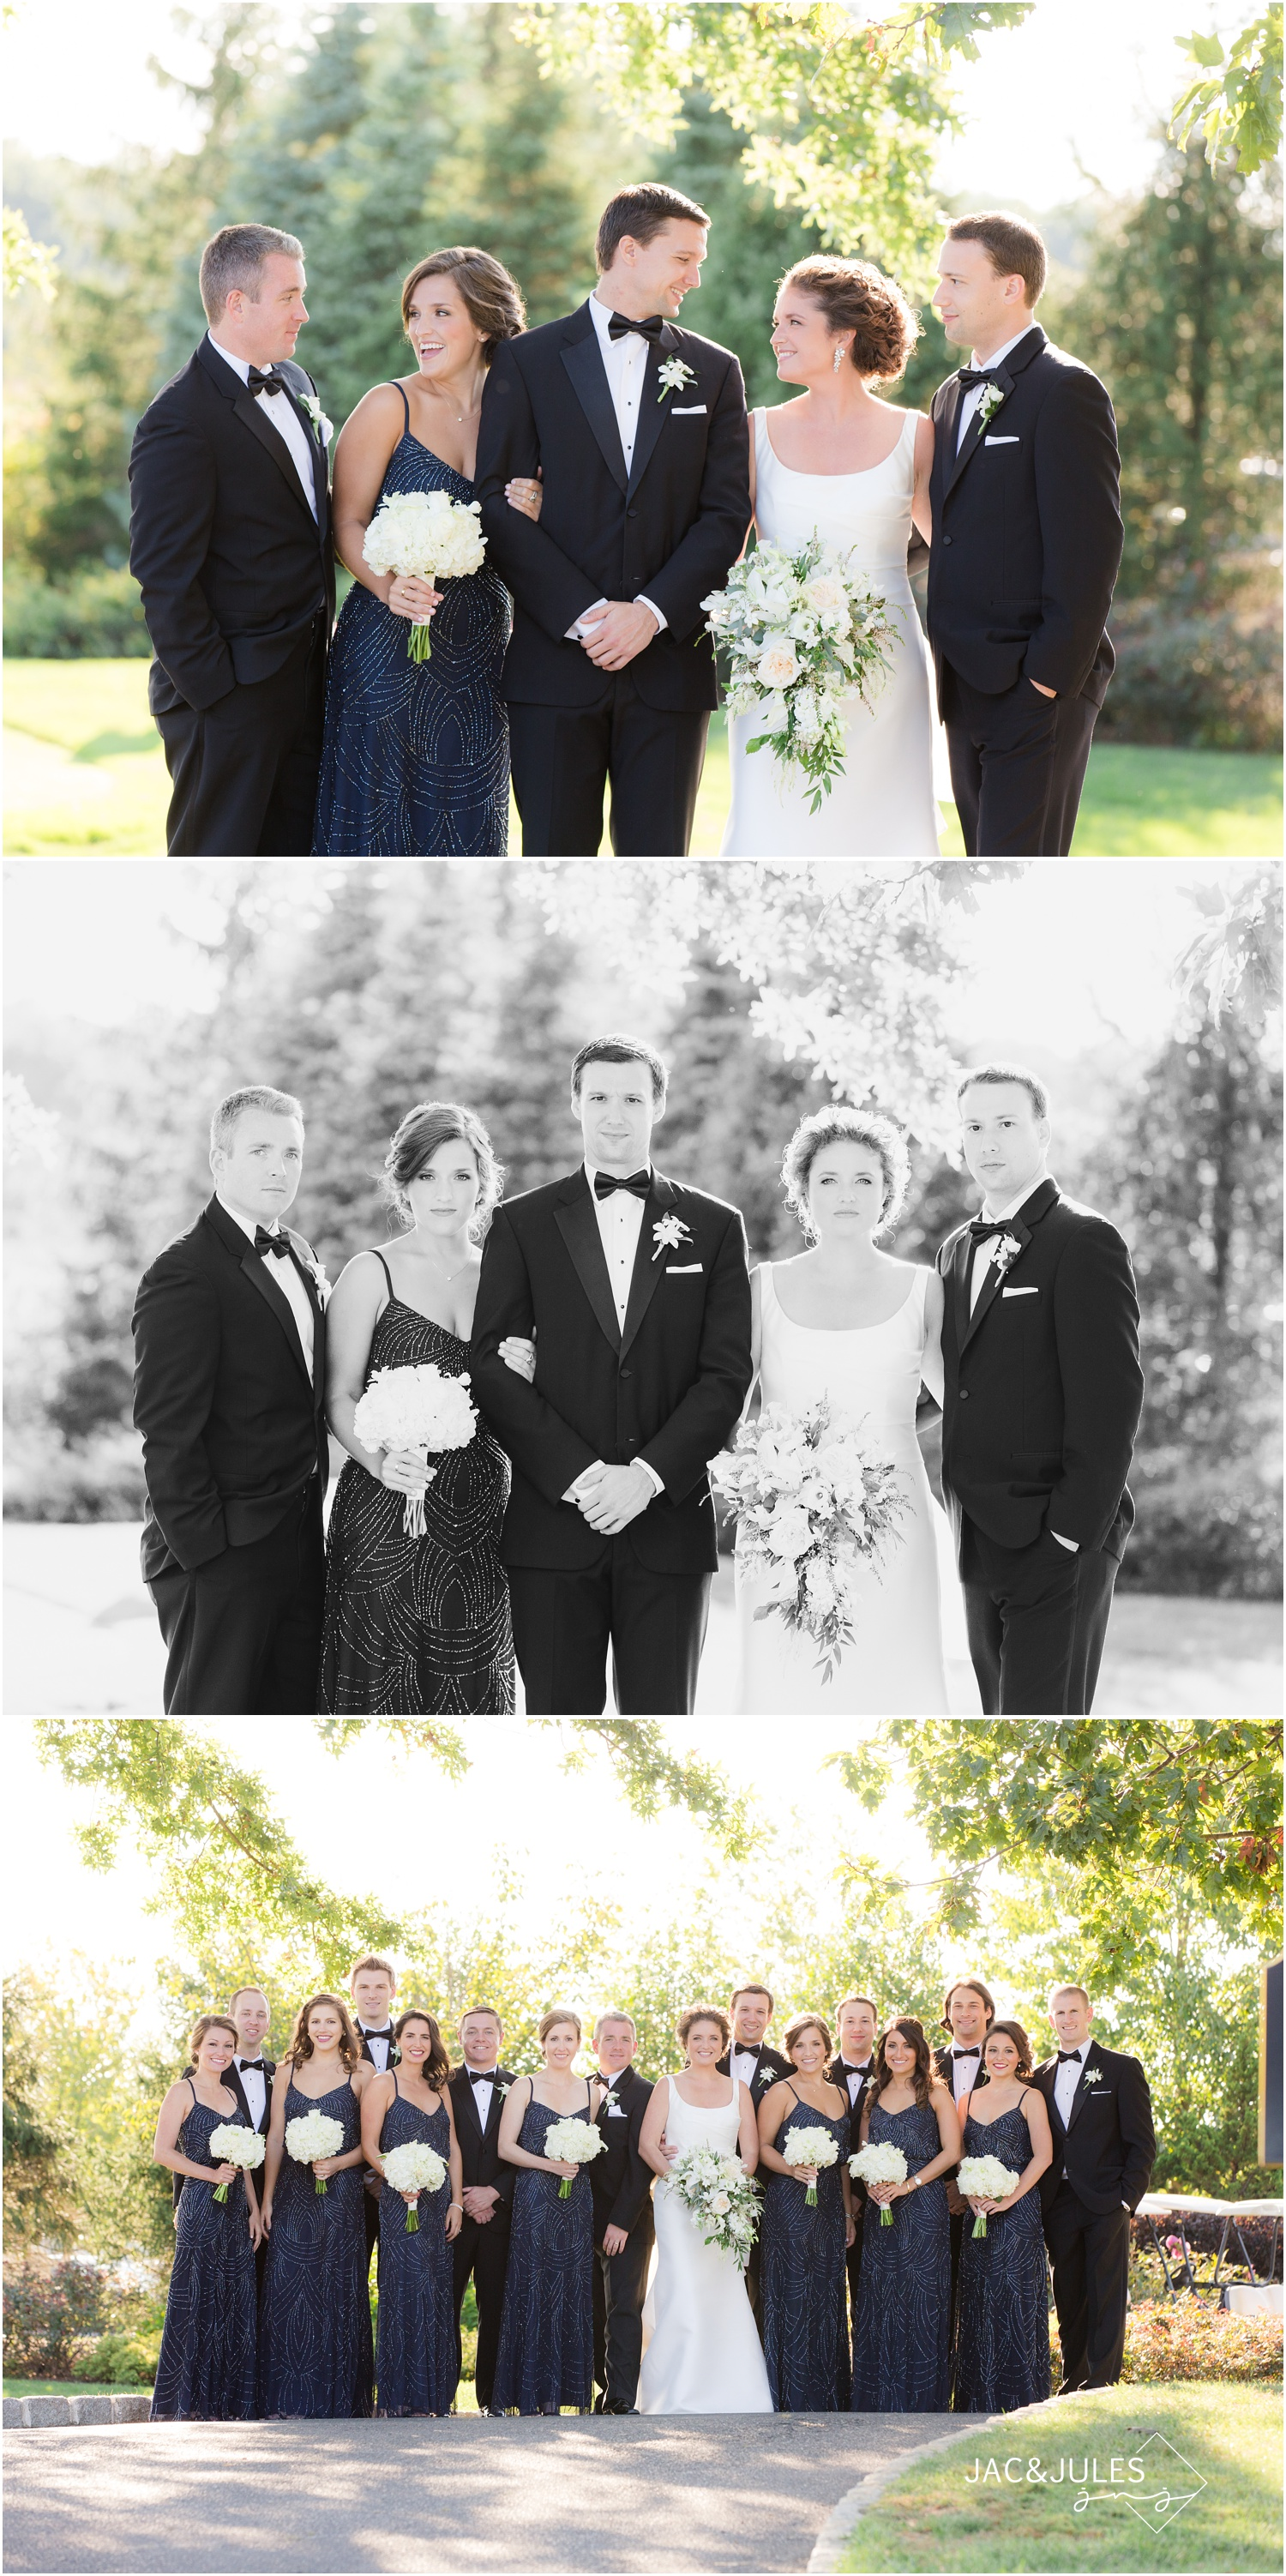 bridal party photos at eagle oaks golf and country club in wall, nj.